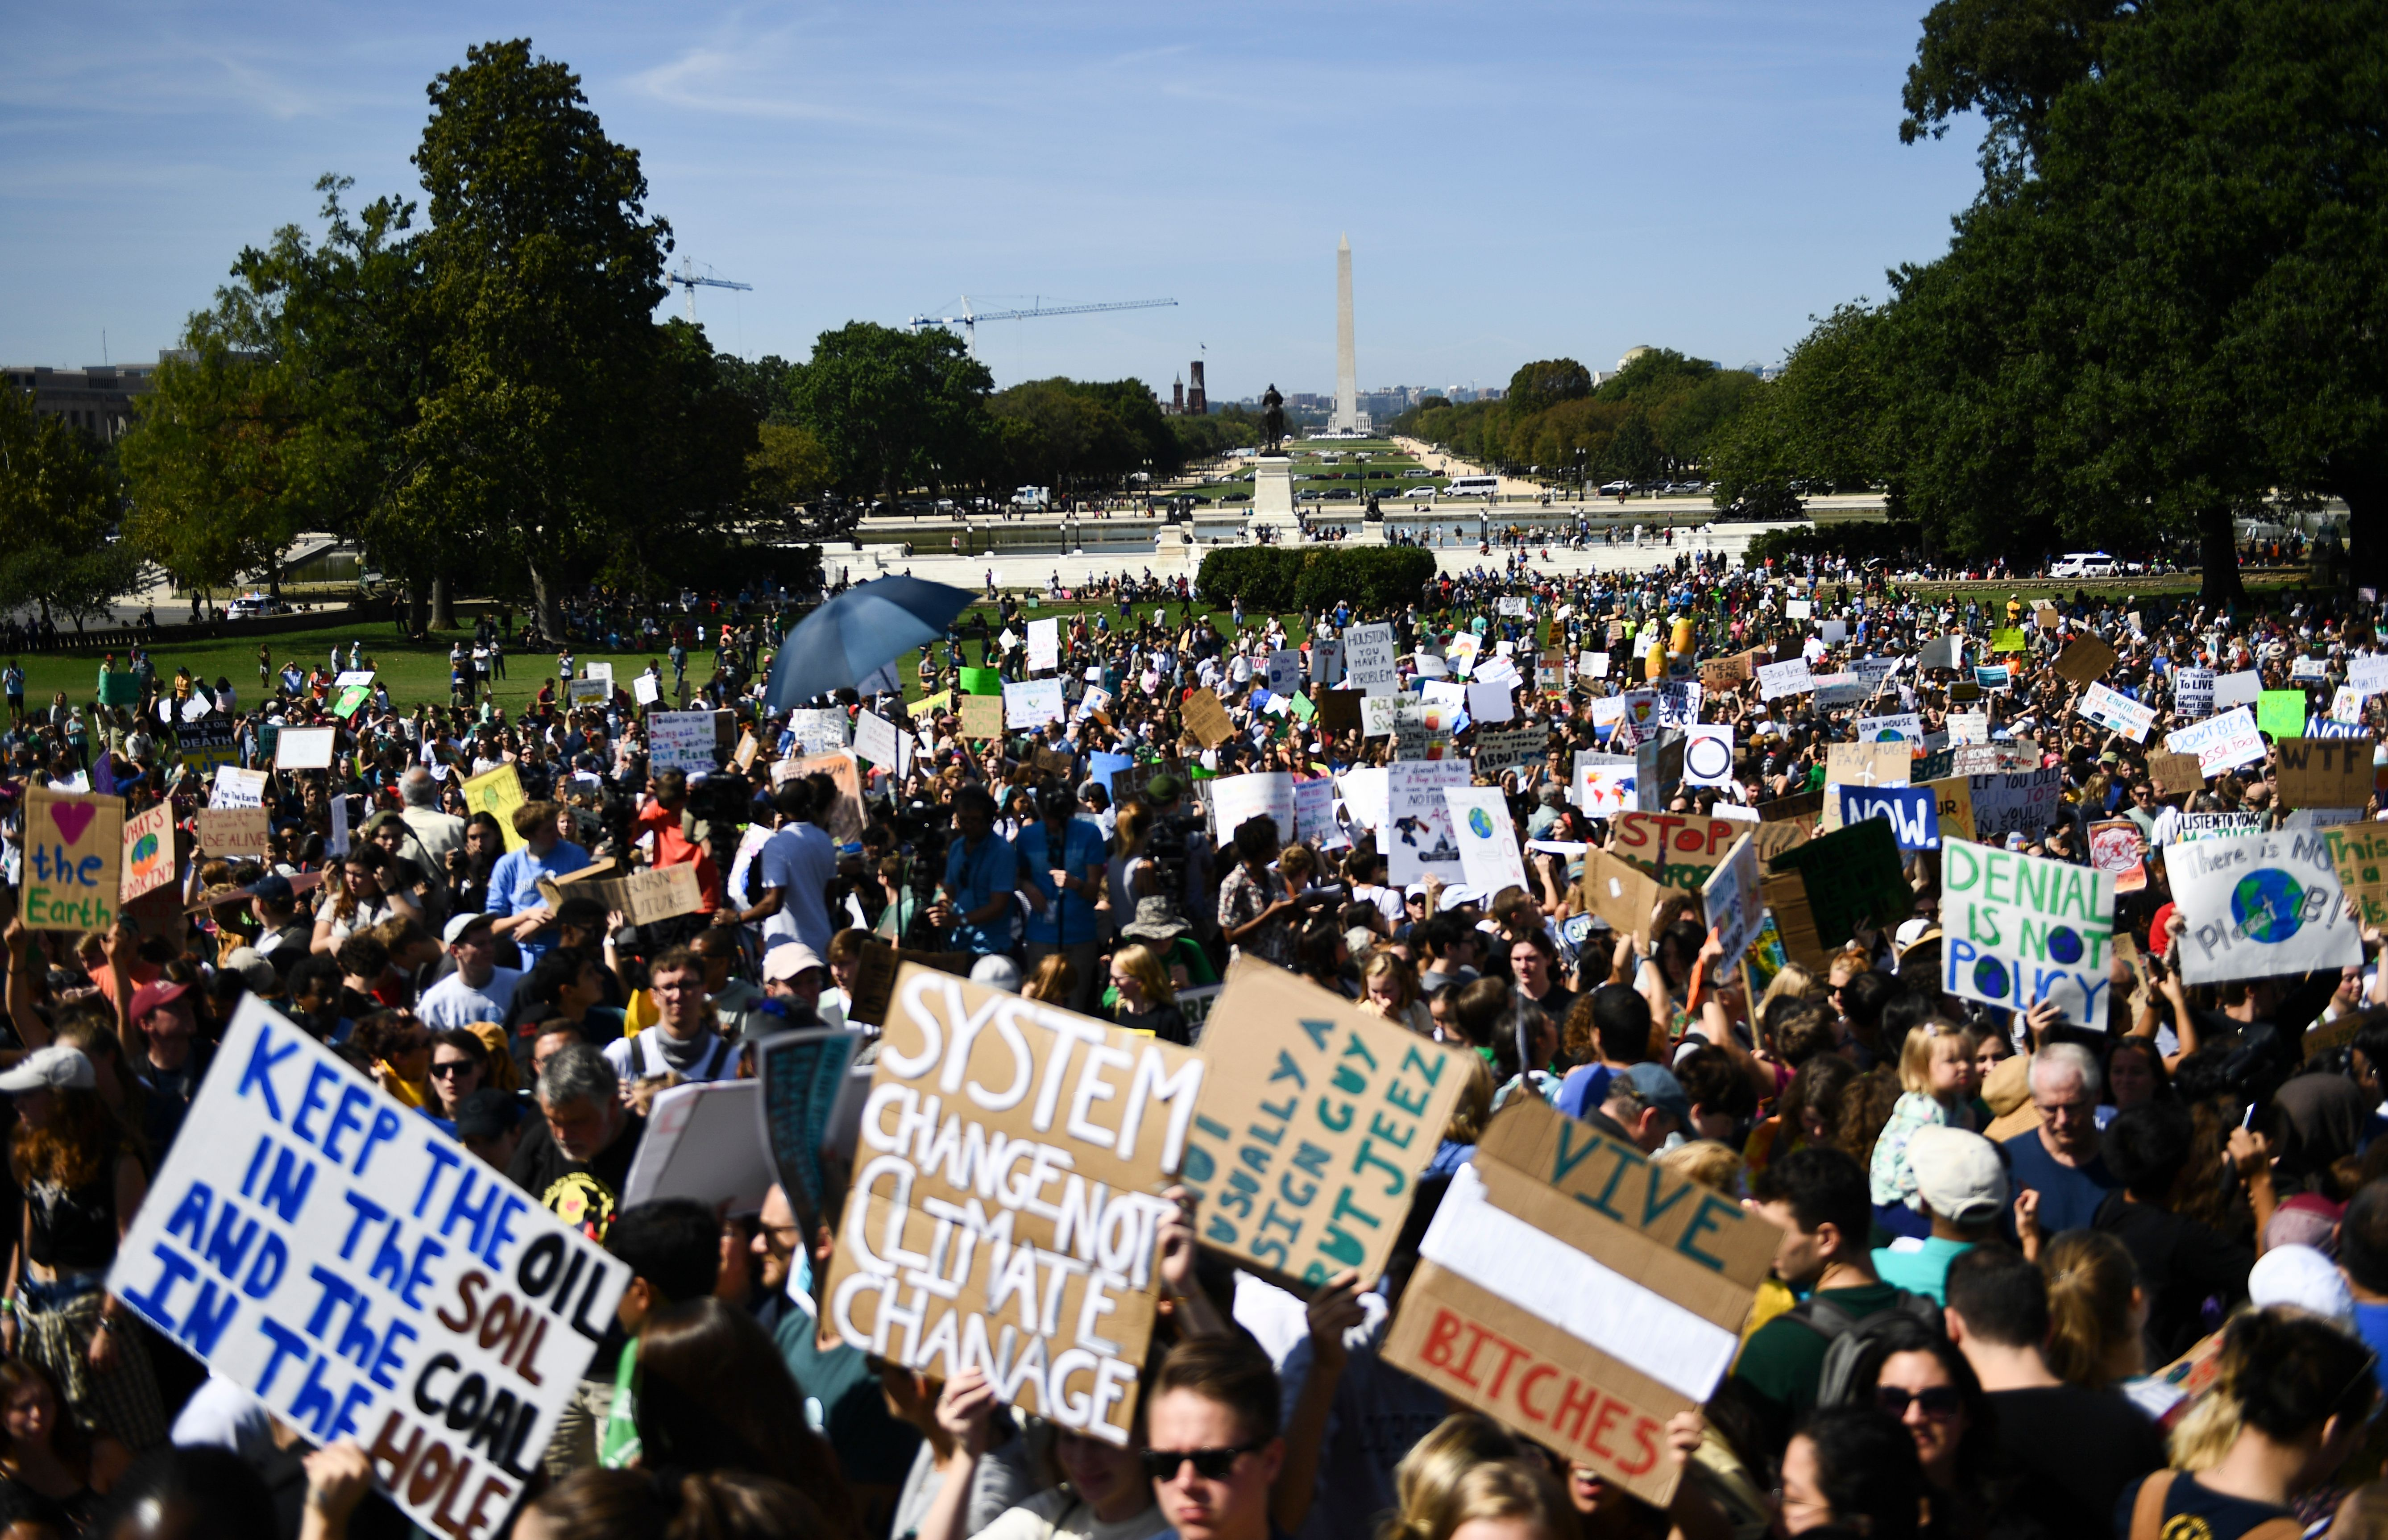 A large group of protesters carry signs demanding action on climate change on the National Mall.